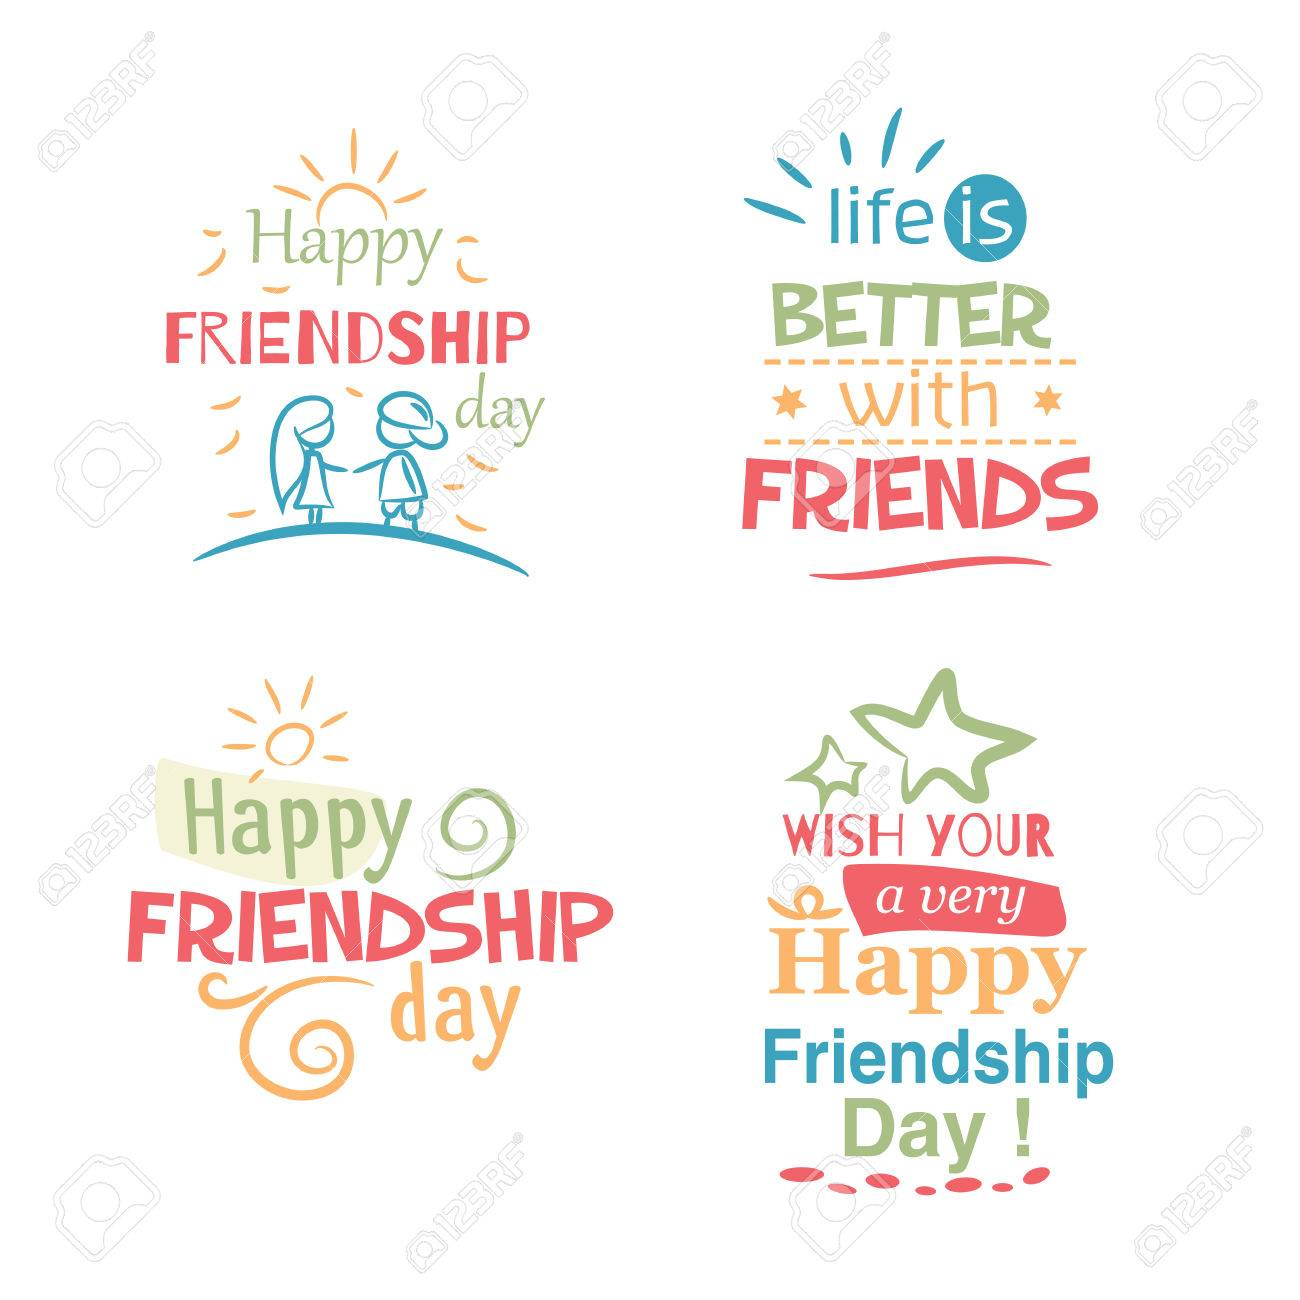 Happy Friendship Day Typographic Colorful Design Inspirational Royalty Free Cliparts Vectors And Stock Illustration Image 63247724